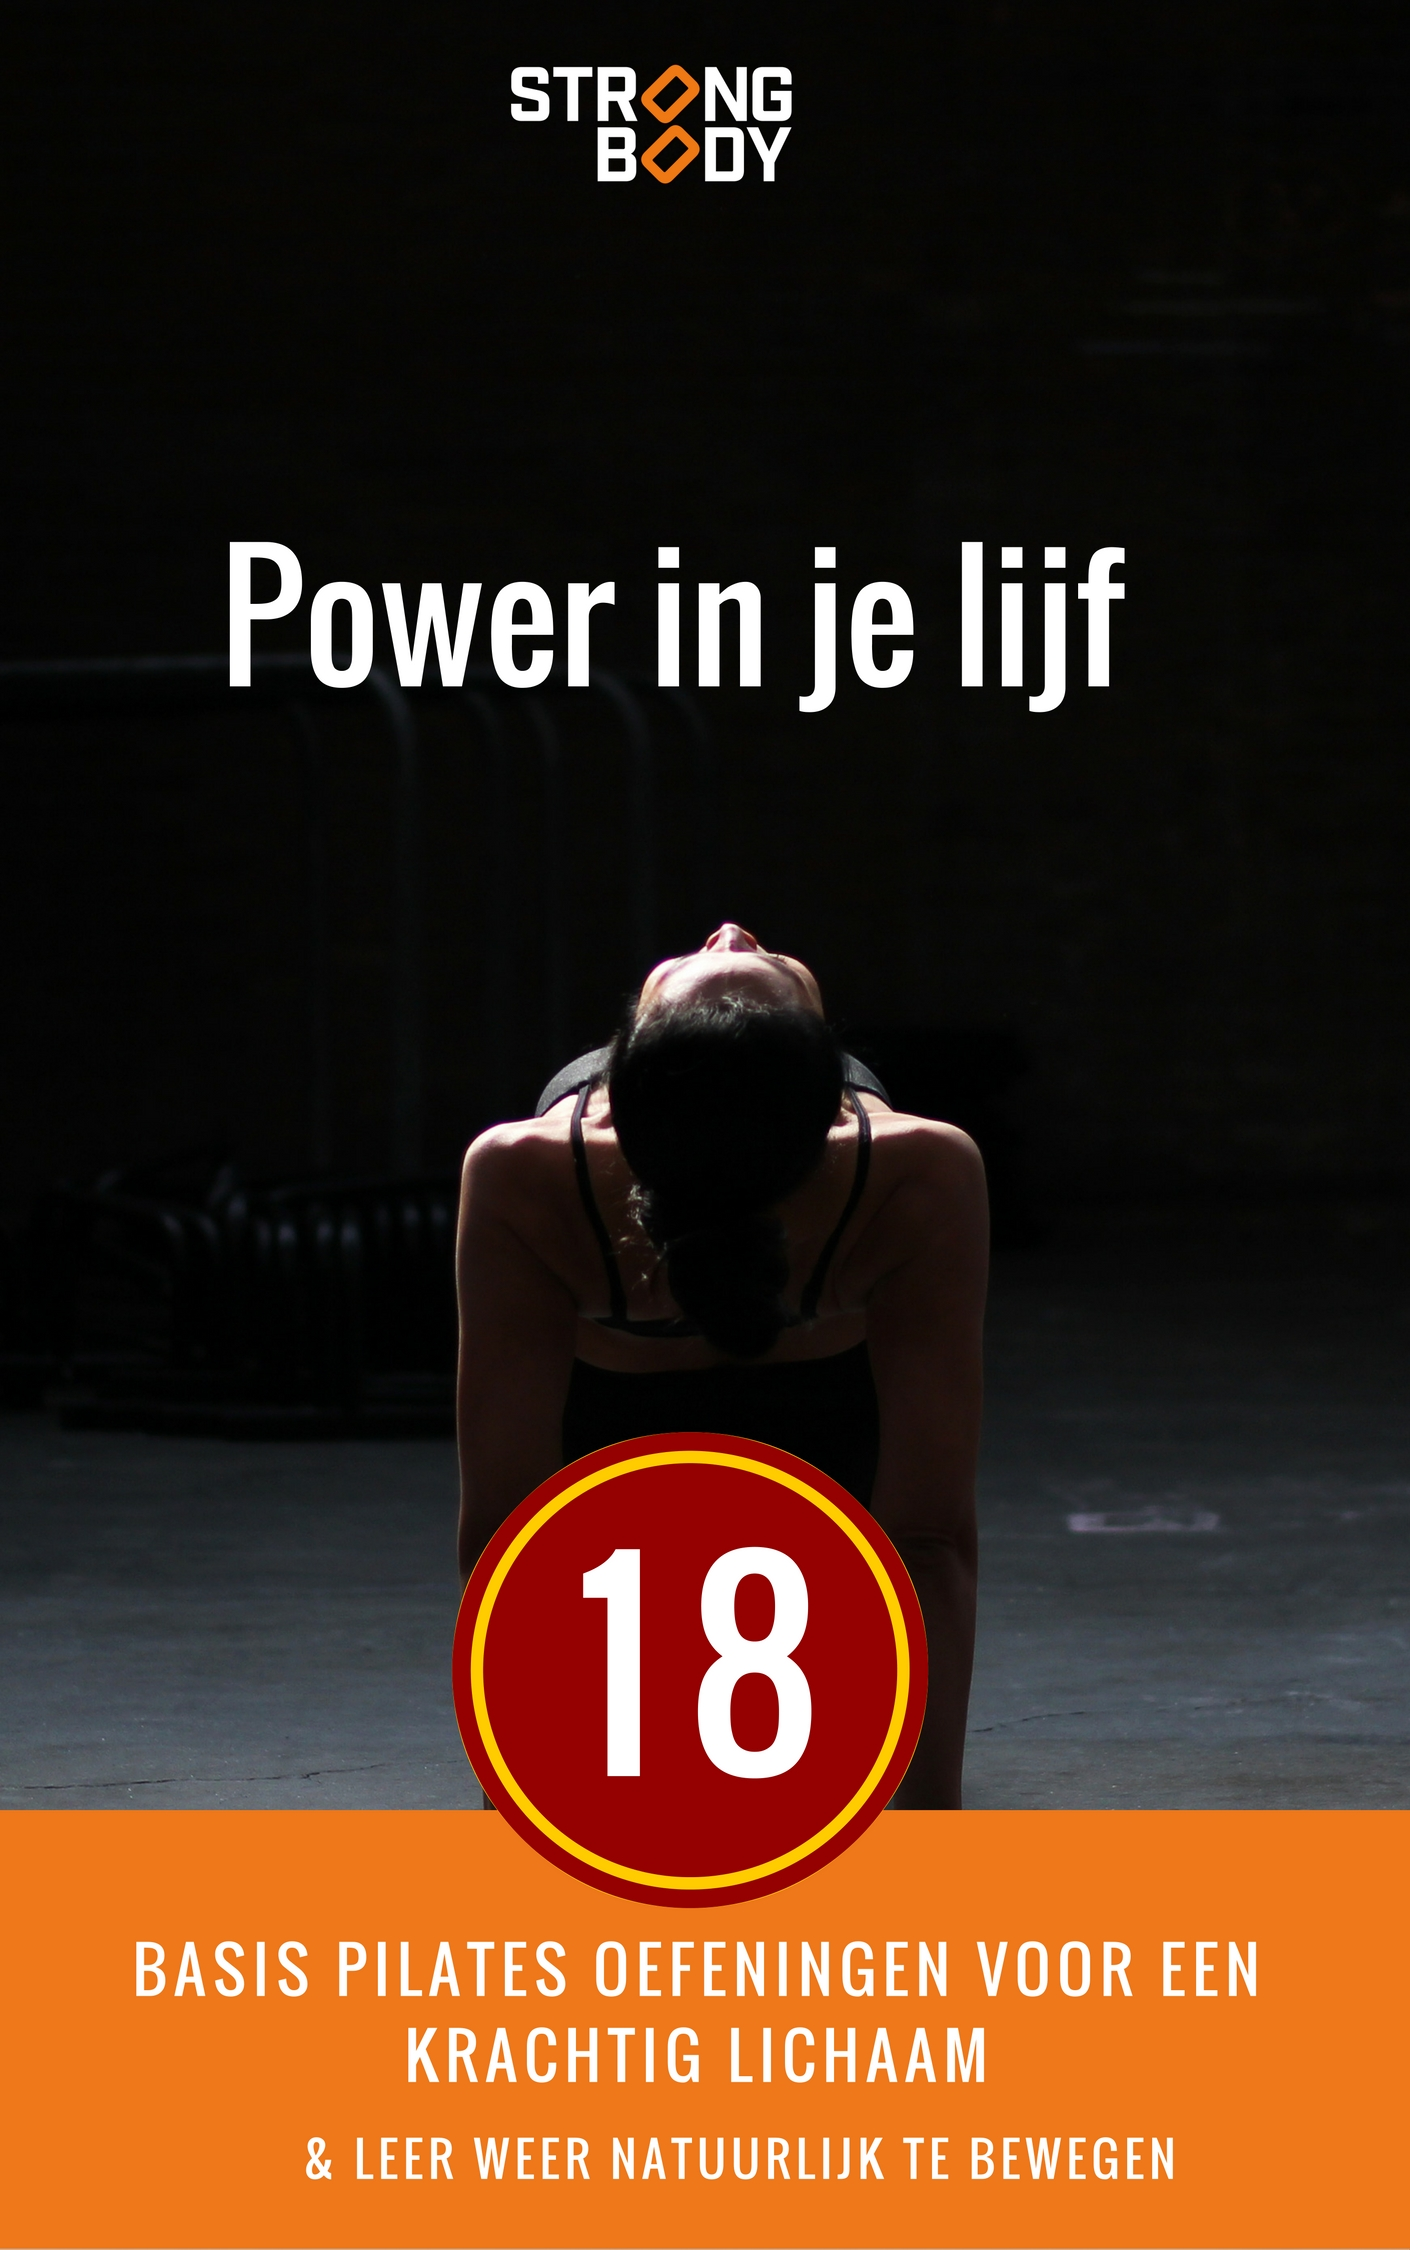 StrongbodyNL, pilates, Juliette Amadsoedjoek